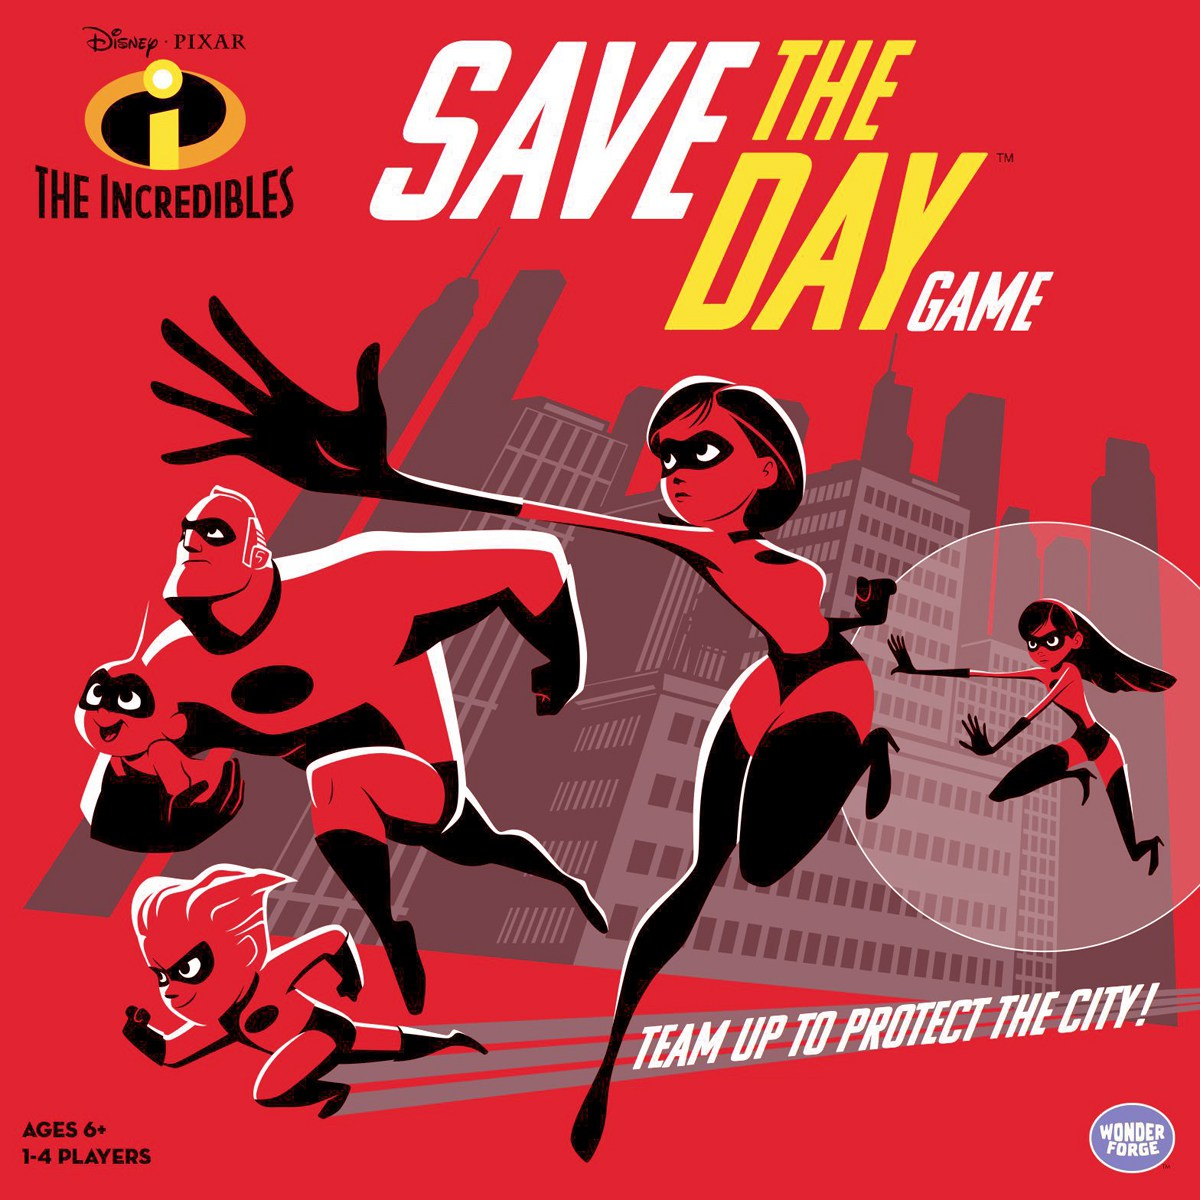 The Incredibles: Save the Day cover